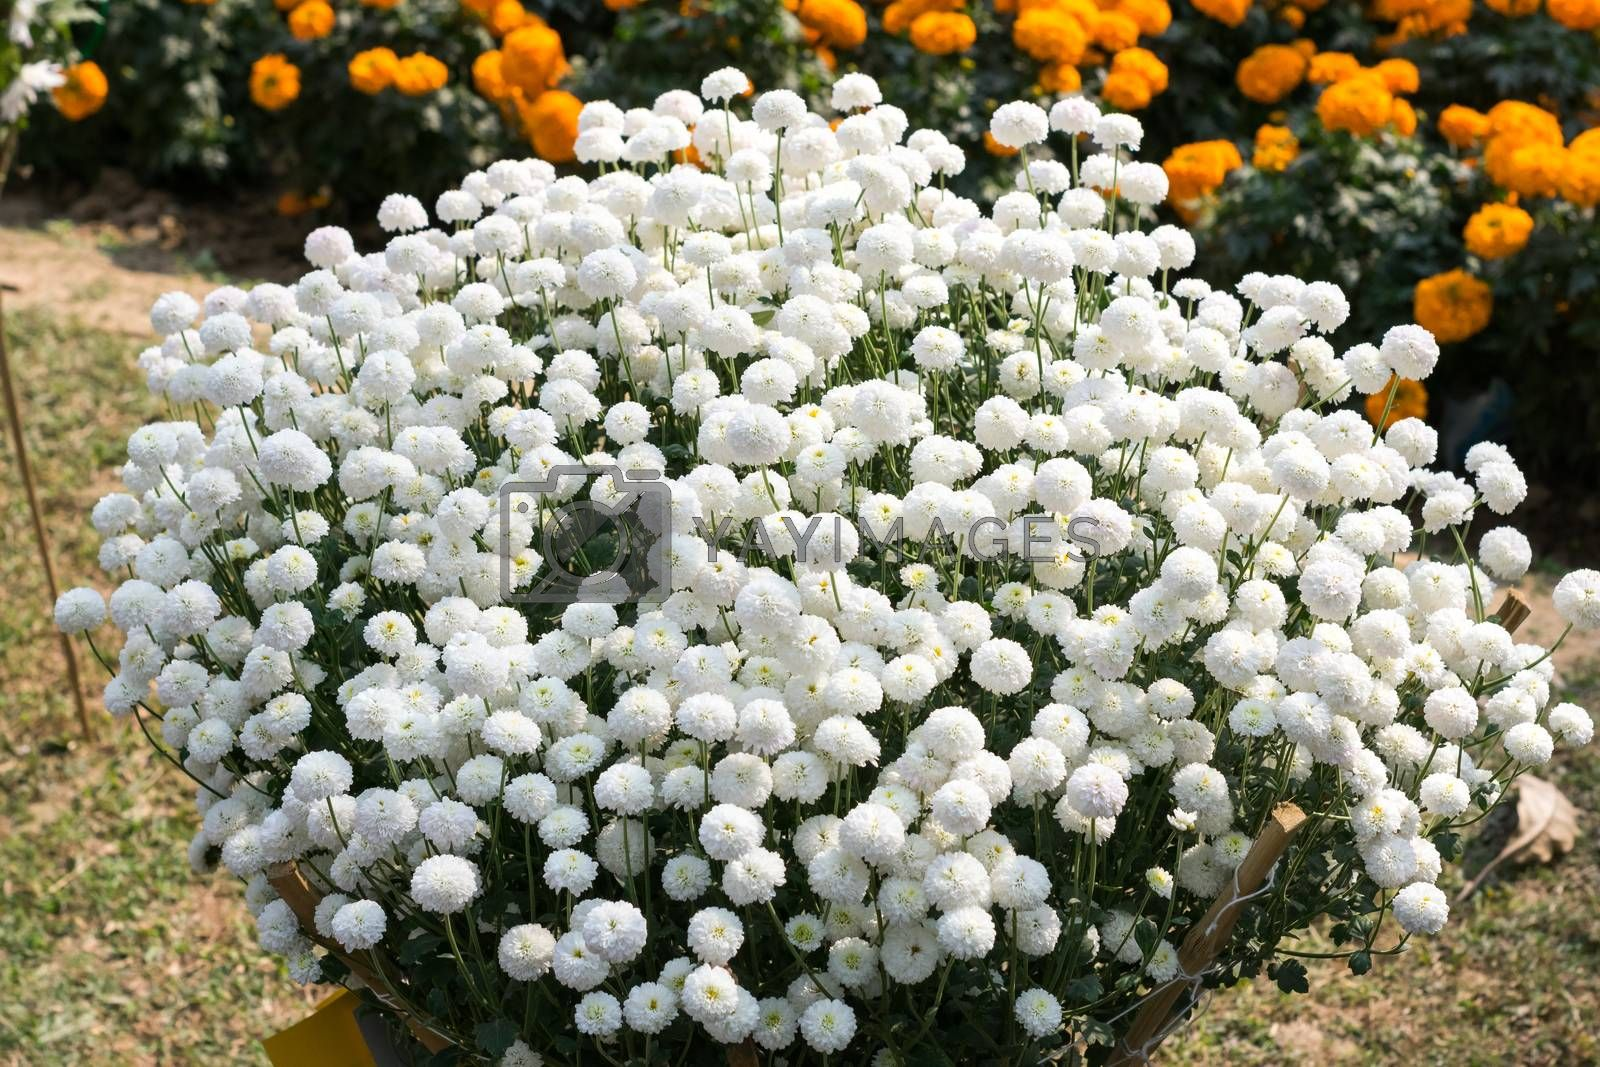 White Guldavari (Chrysanthemum) Flower, a herbaceous perennial plants. It is a sun loving plant Blooms in early spring to late summer. A very popular flower for gardens and bouquets. Copy space room.